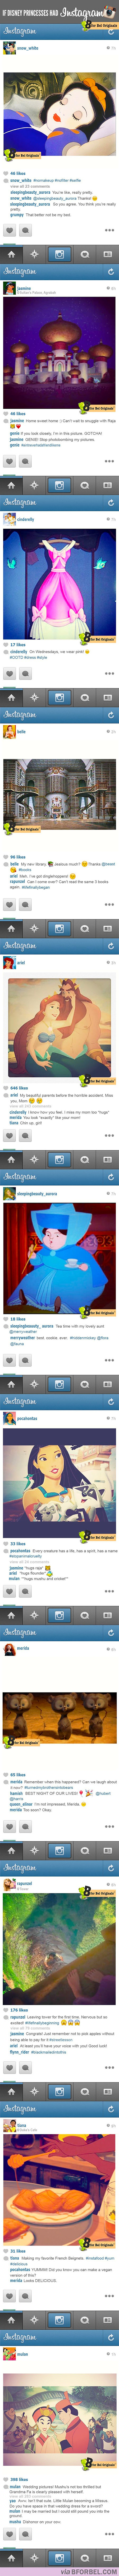 Vamers - Artistry - Fandom - Ermahgerd - What if Disney Princesses has Instragram - Full